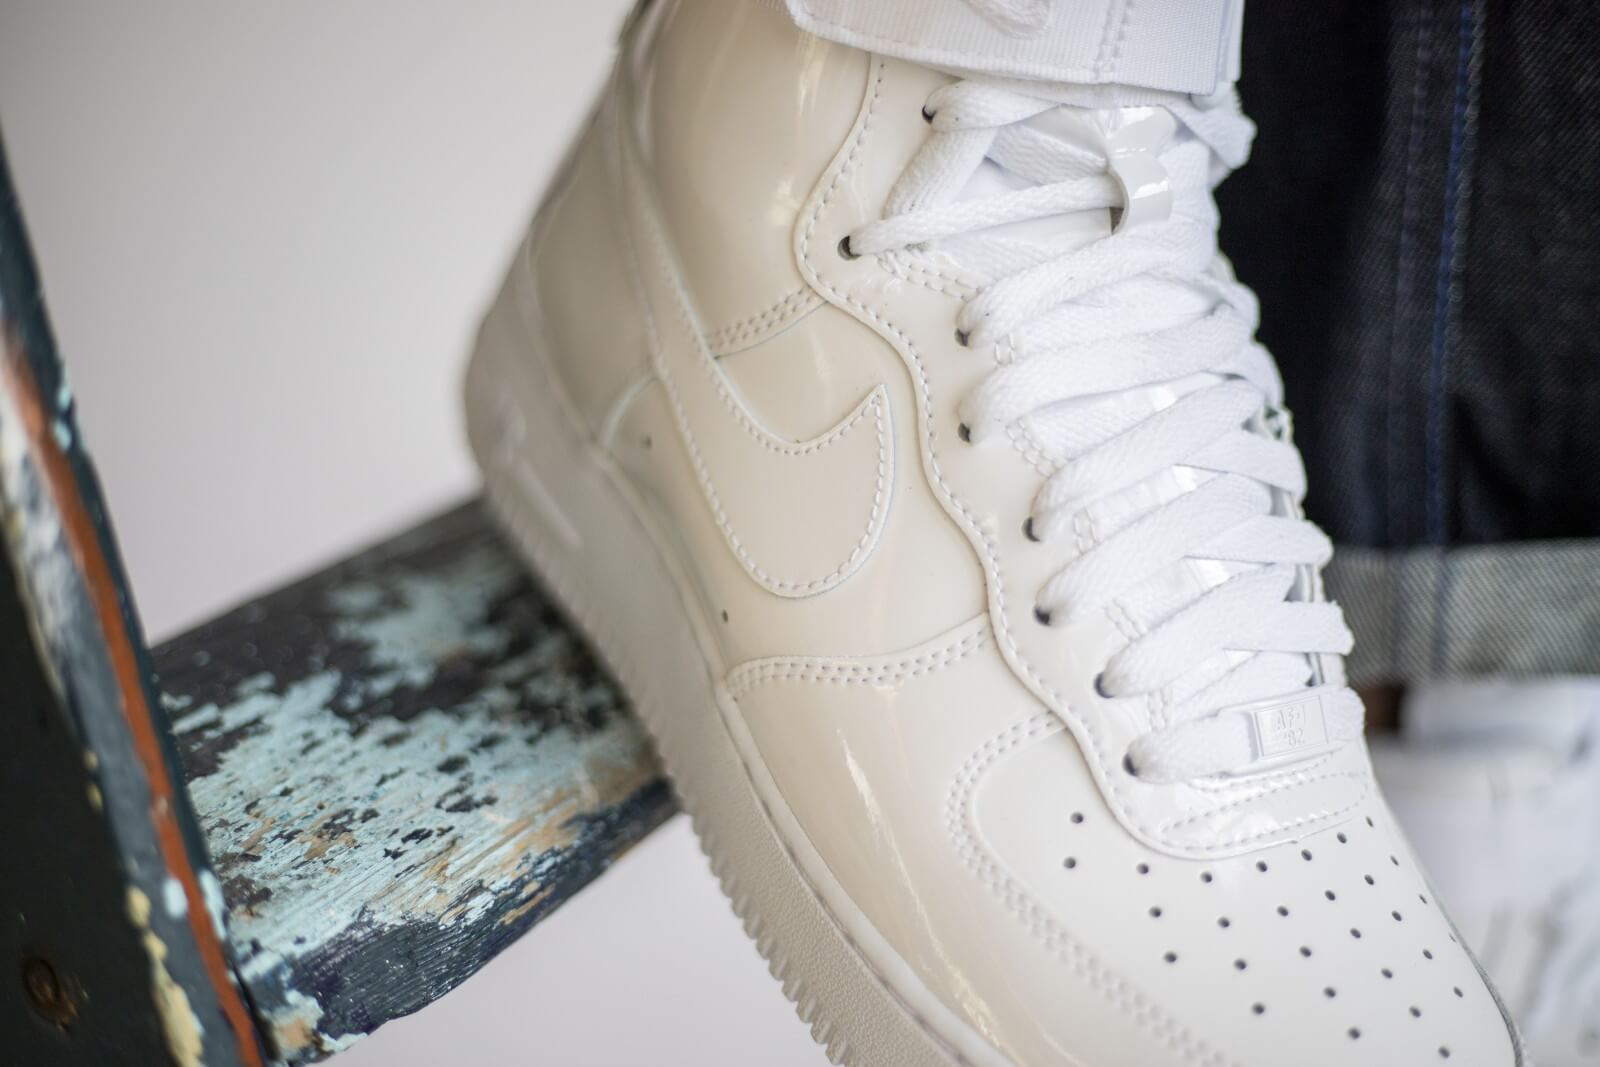 Nike Air Force 1 High Retro QS White 743546 107